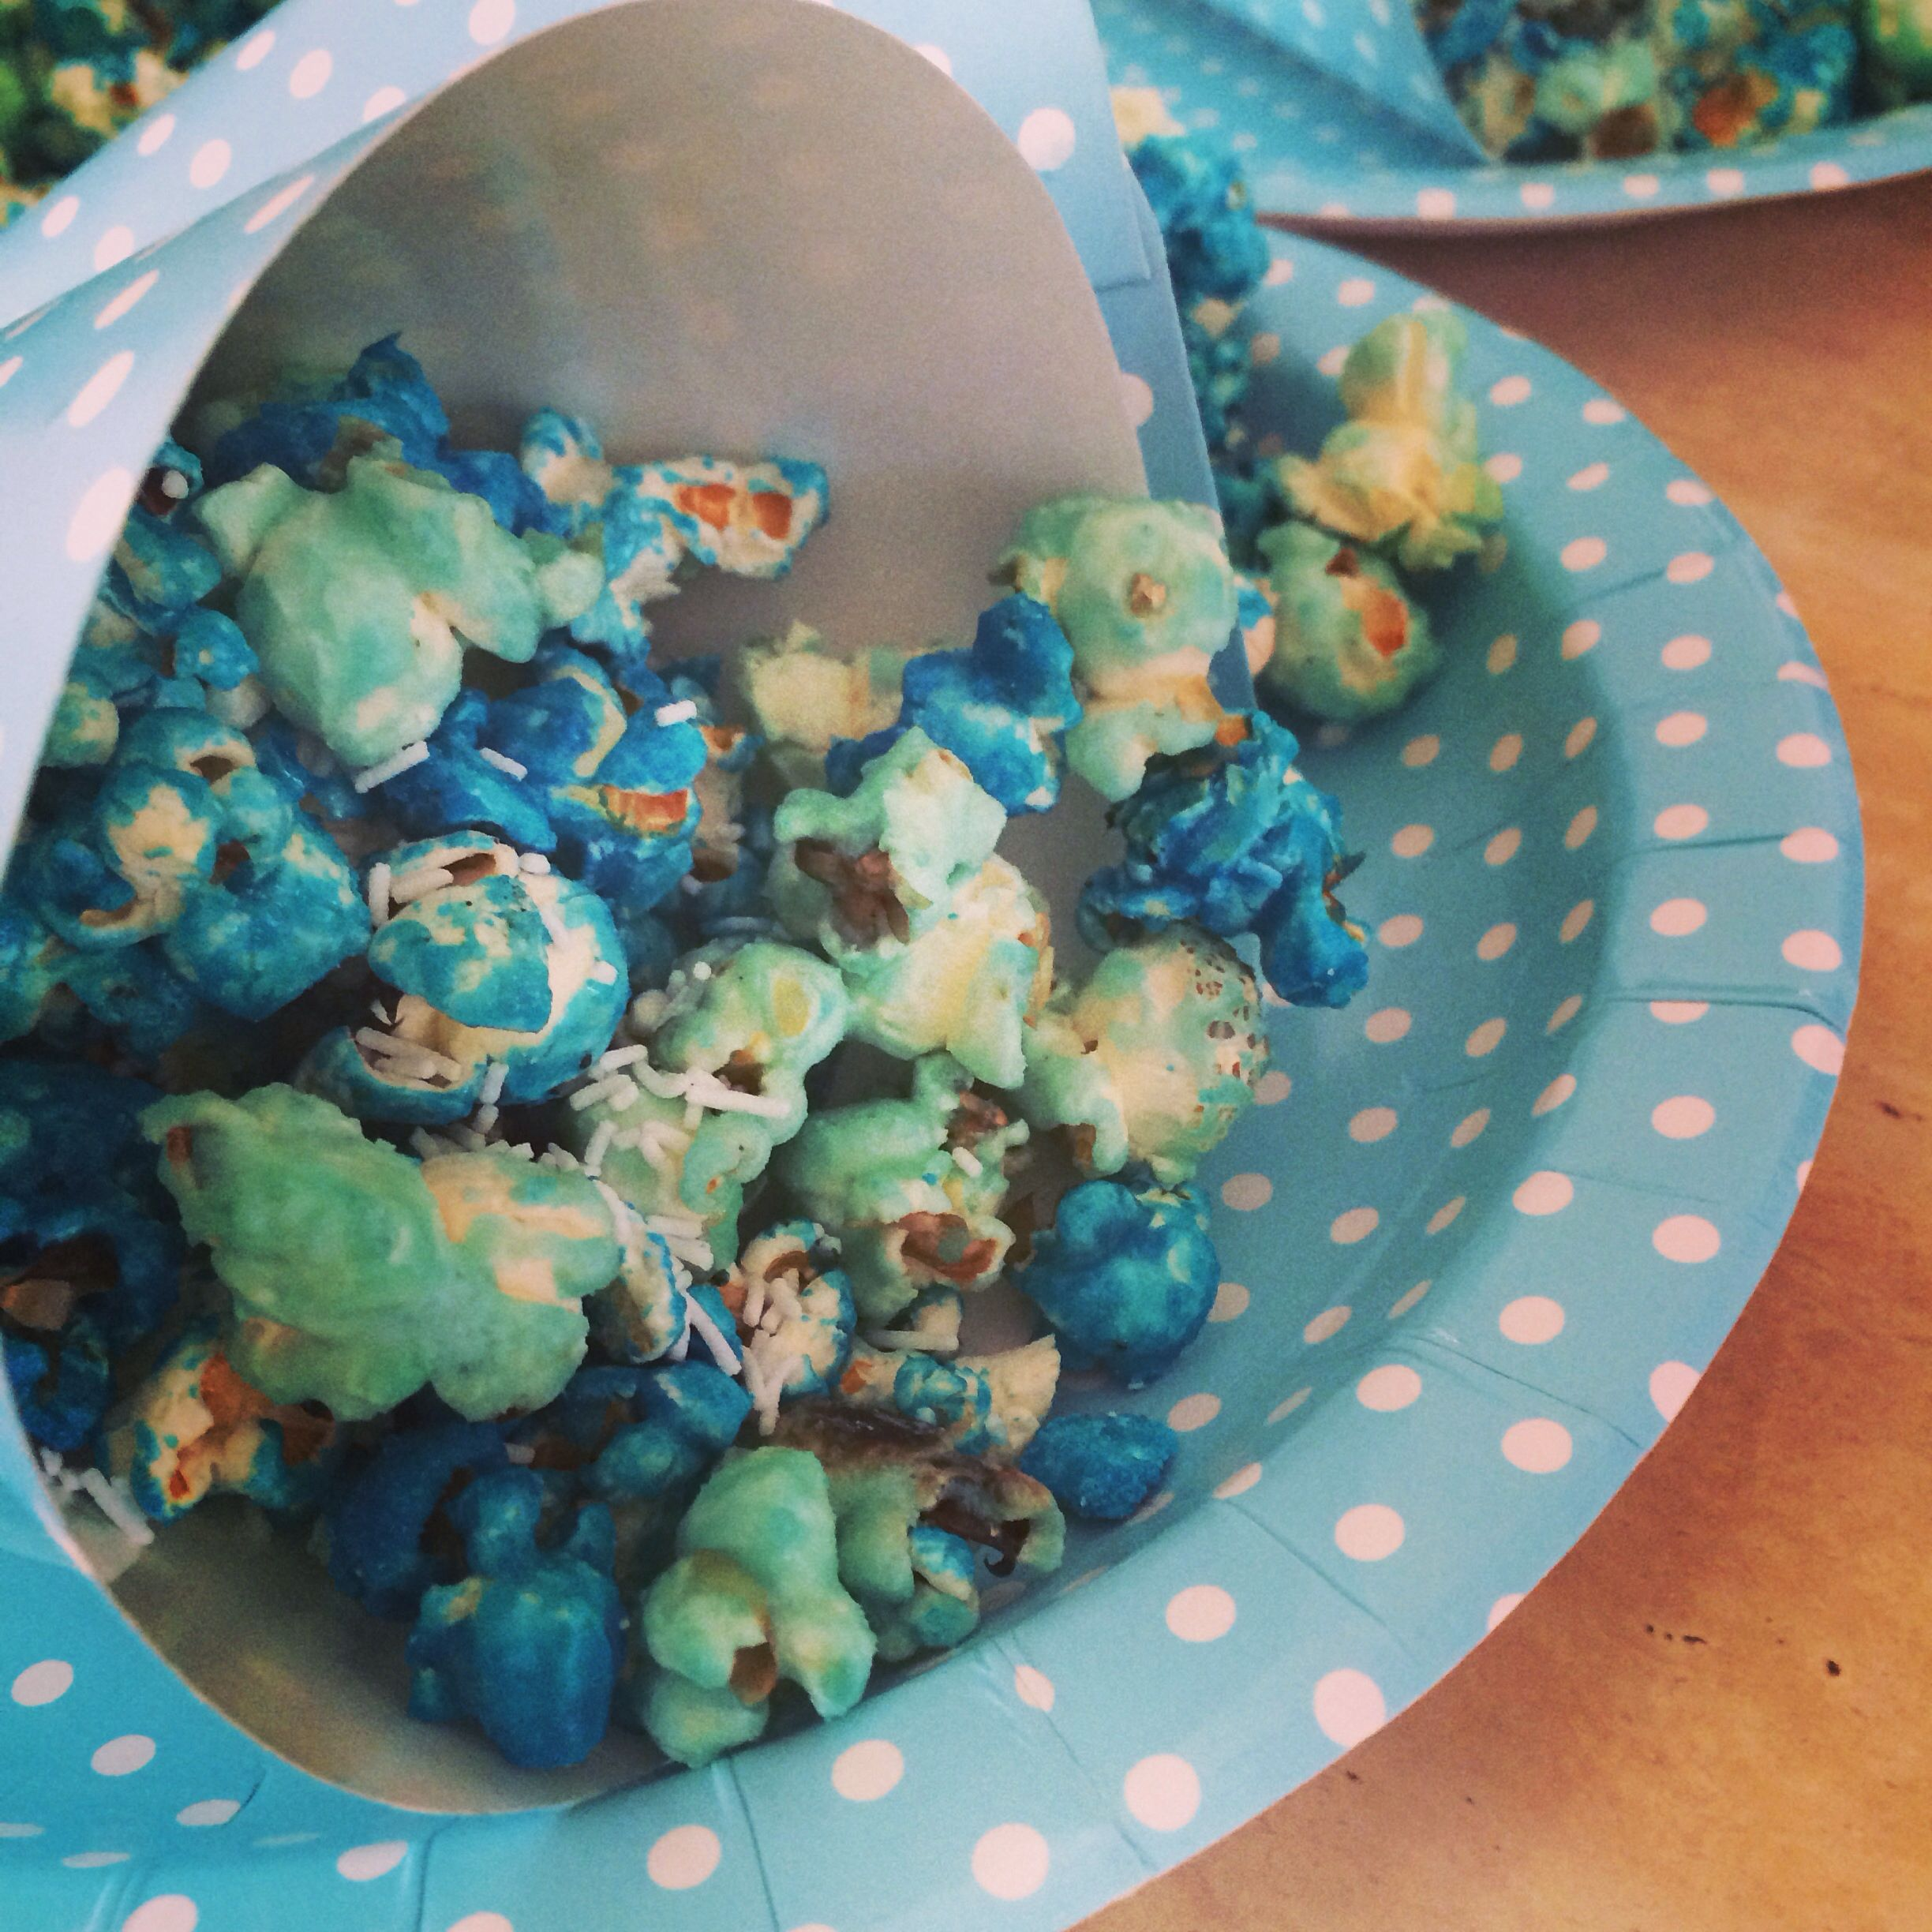 Frozen party food - blue candied popcorn